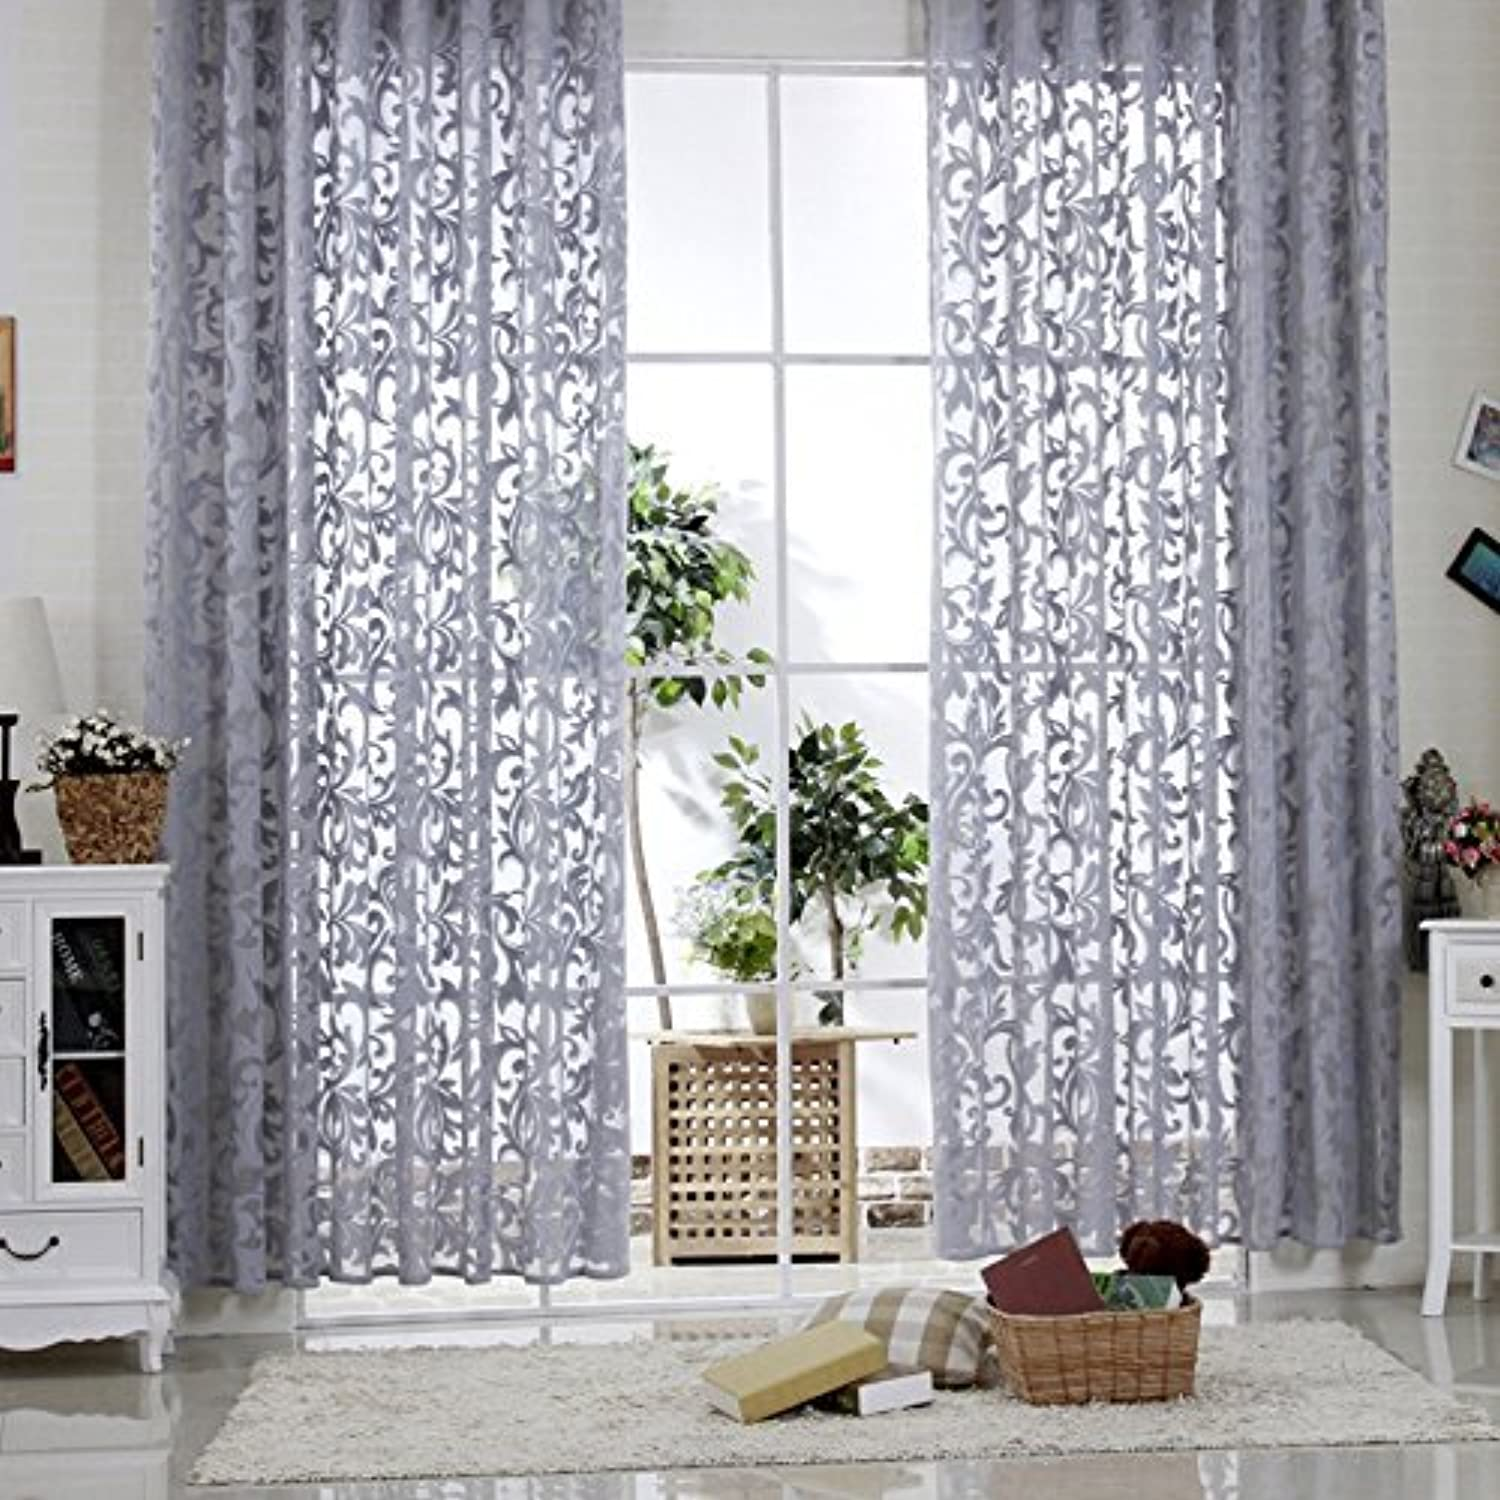 r lang slot top modern jacquard voile curtains grey 48 drop sold by the meter by r lang. Black Bedroom Furniture Sets. Home Design Ideas